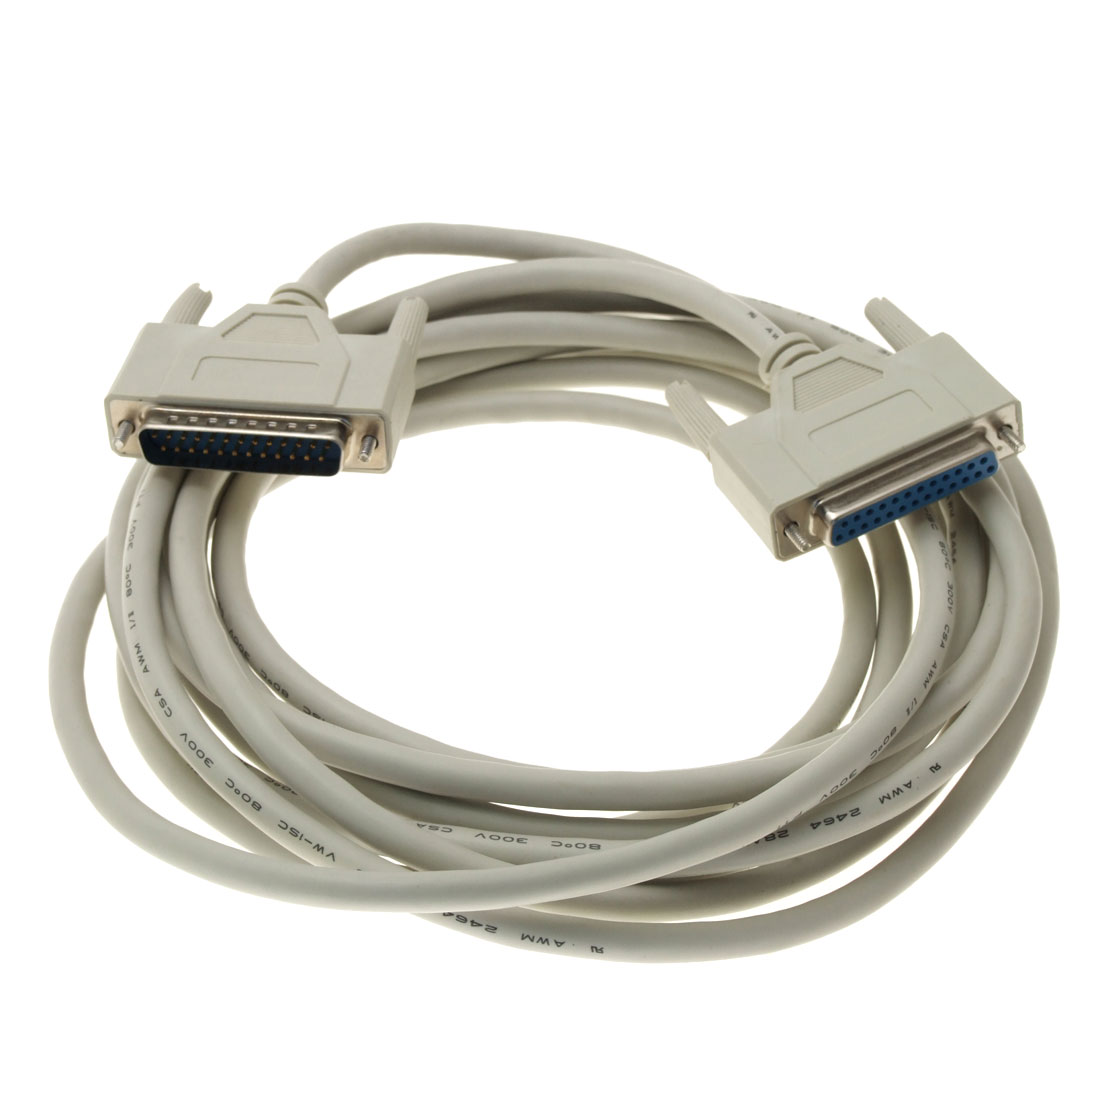 DB25 Pin Male to Female SCSI Parallel Extension Cable